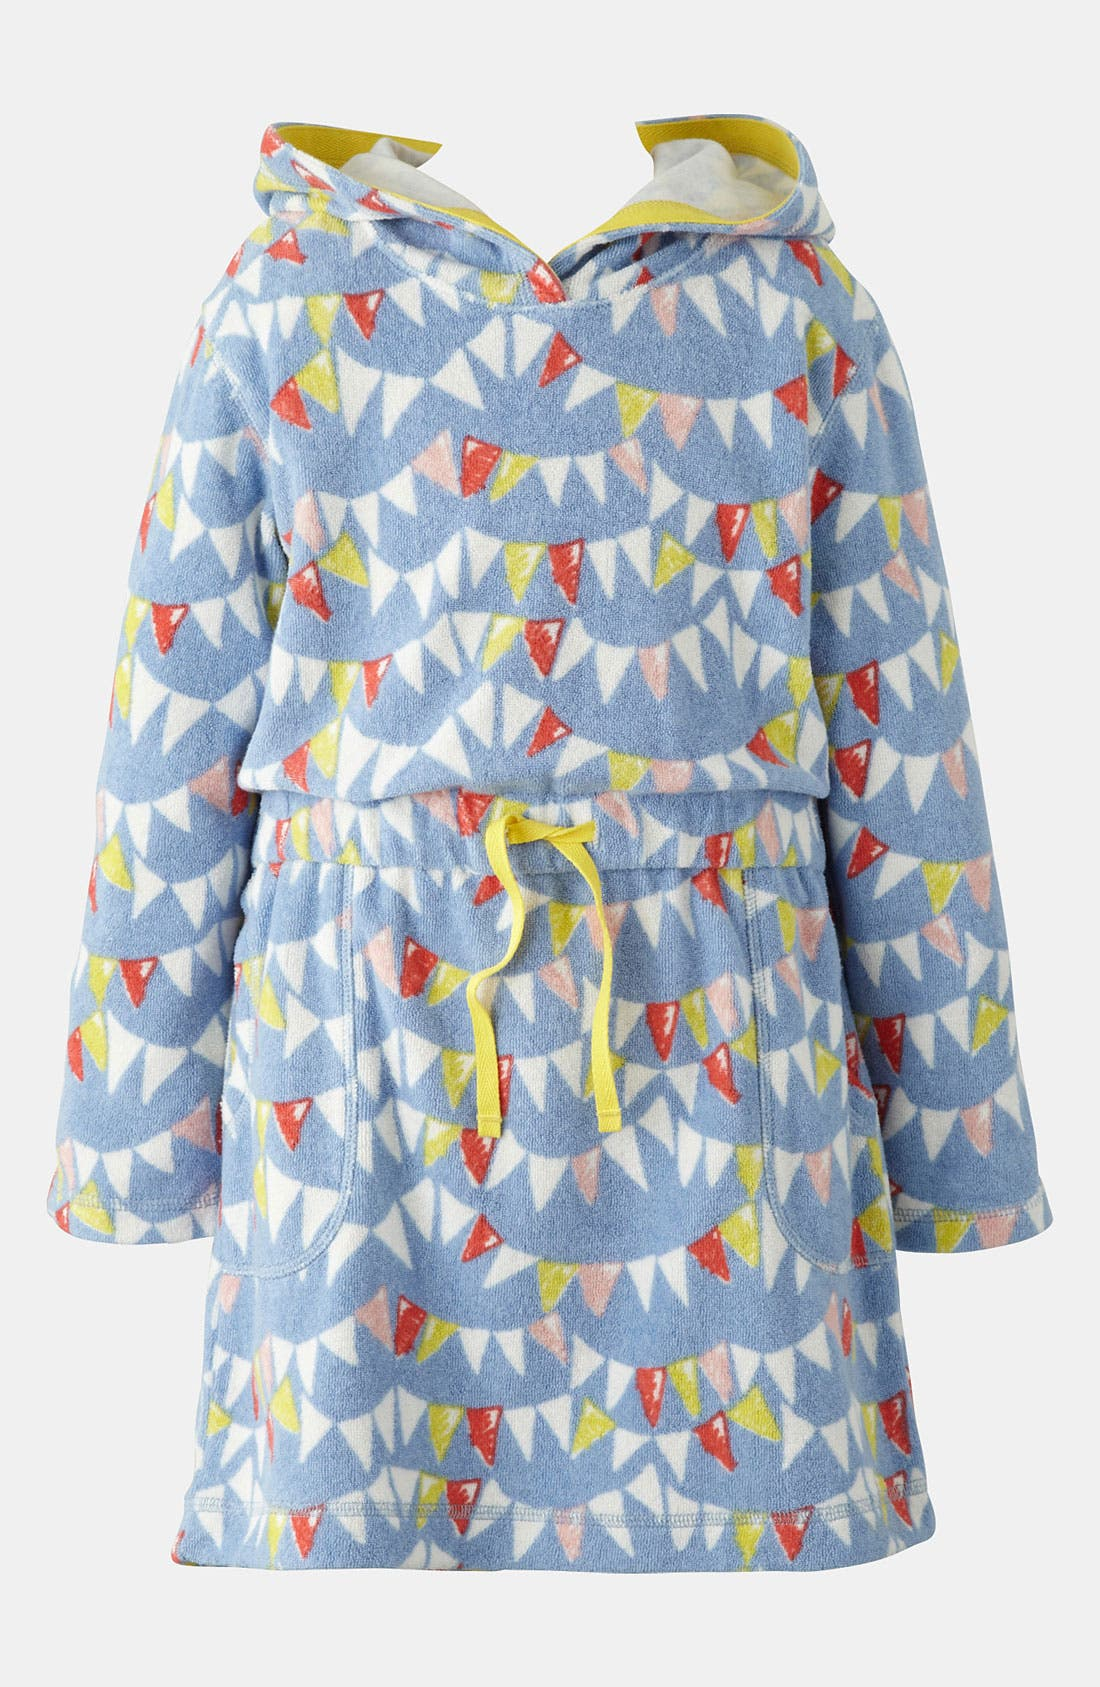 Alternate Image 1 Selected - Mini Boden Beach Dress (Toddler)